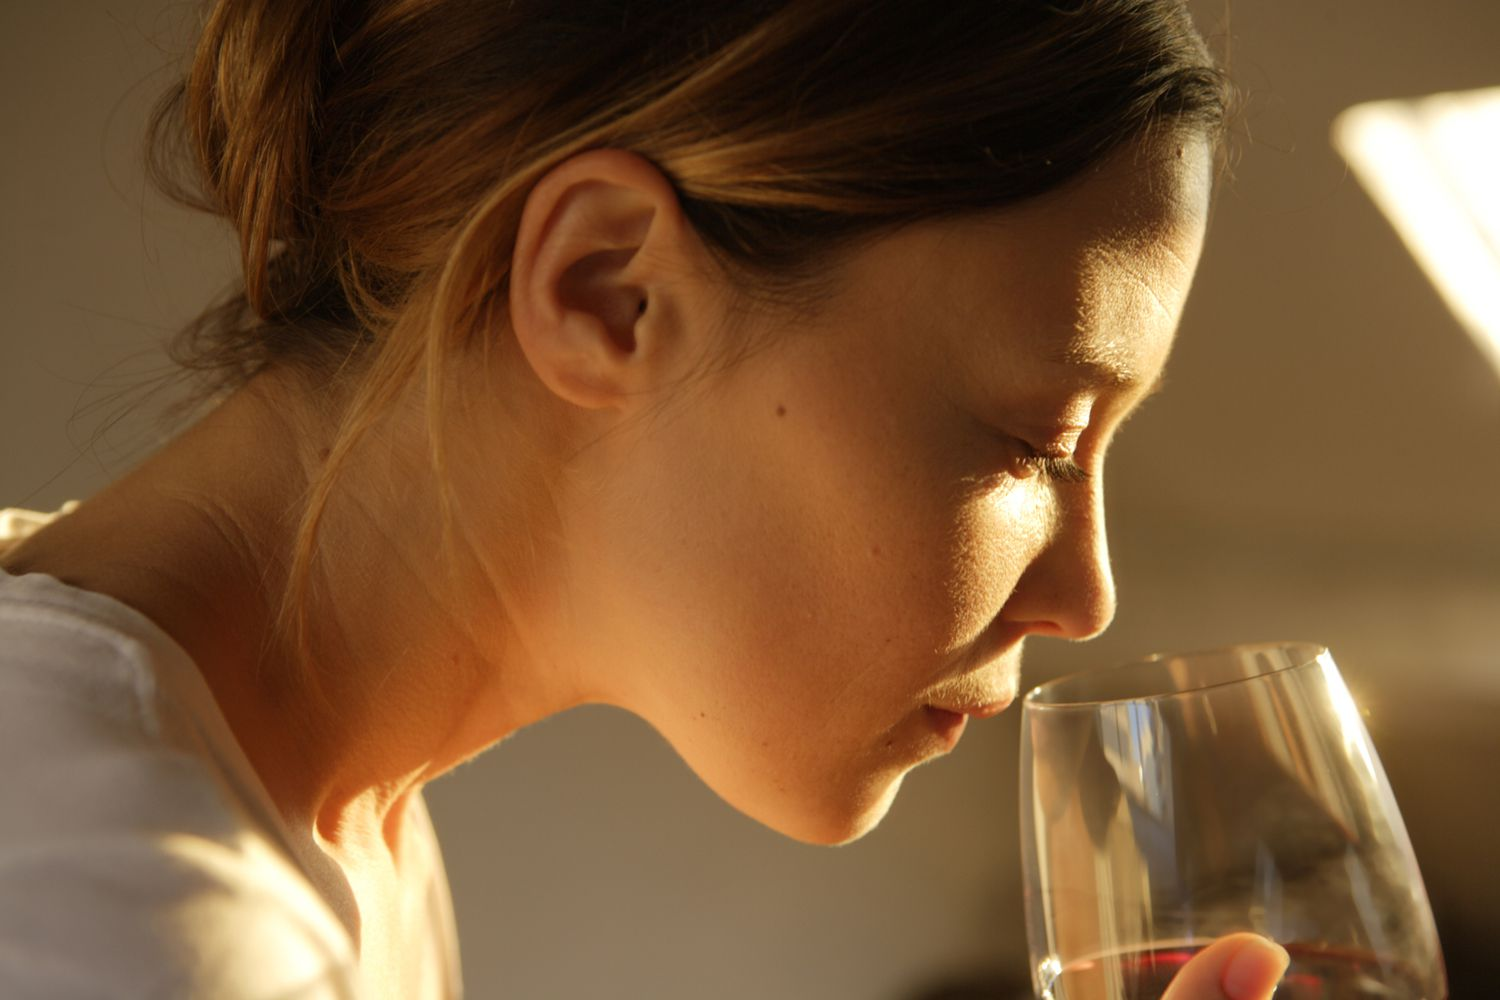 Medical Conditions Leading To Diminished Sense Of Smell